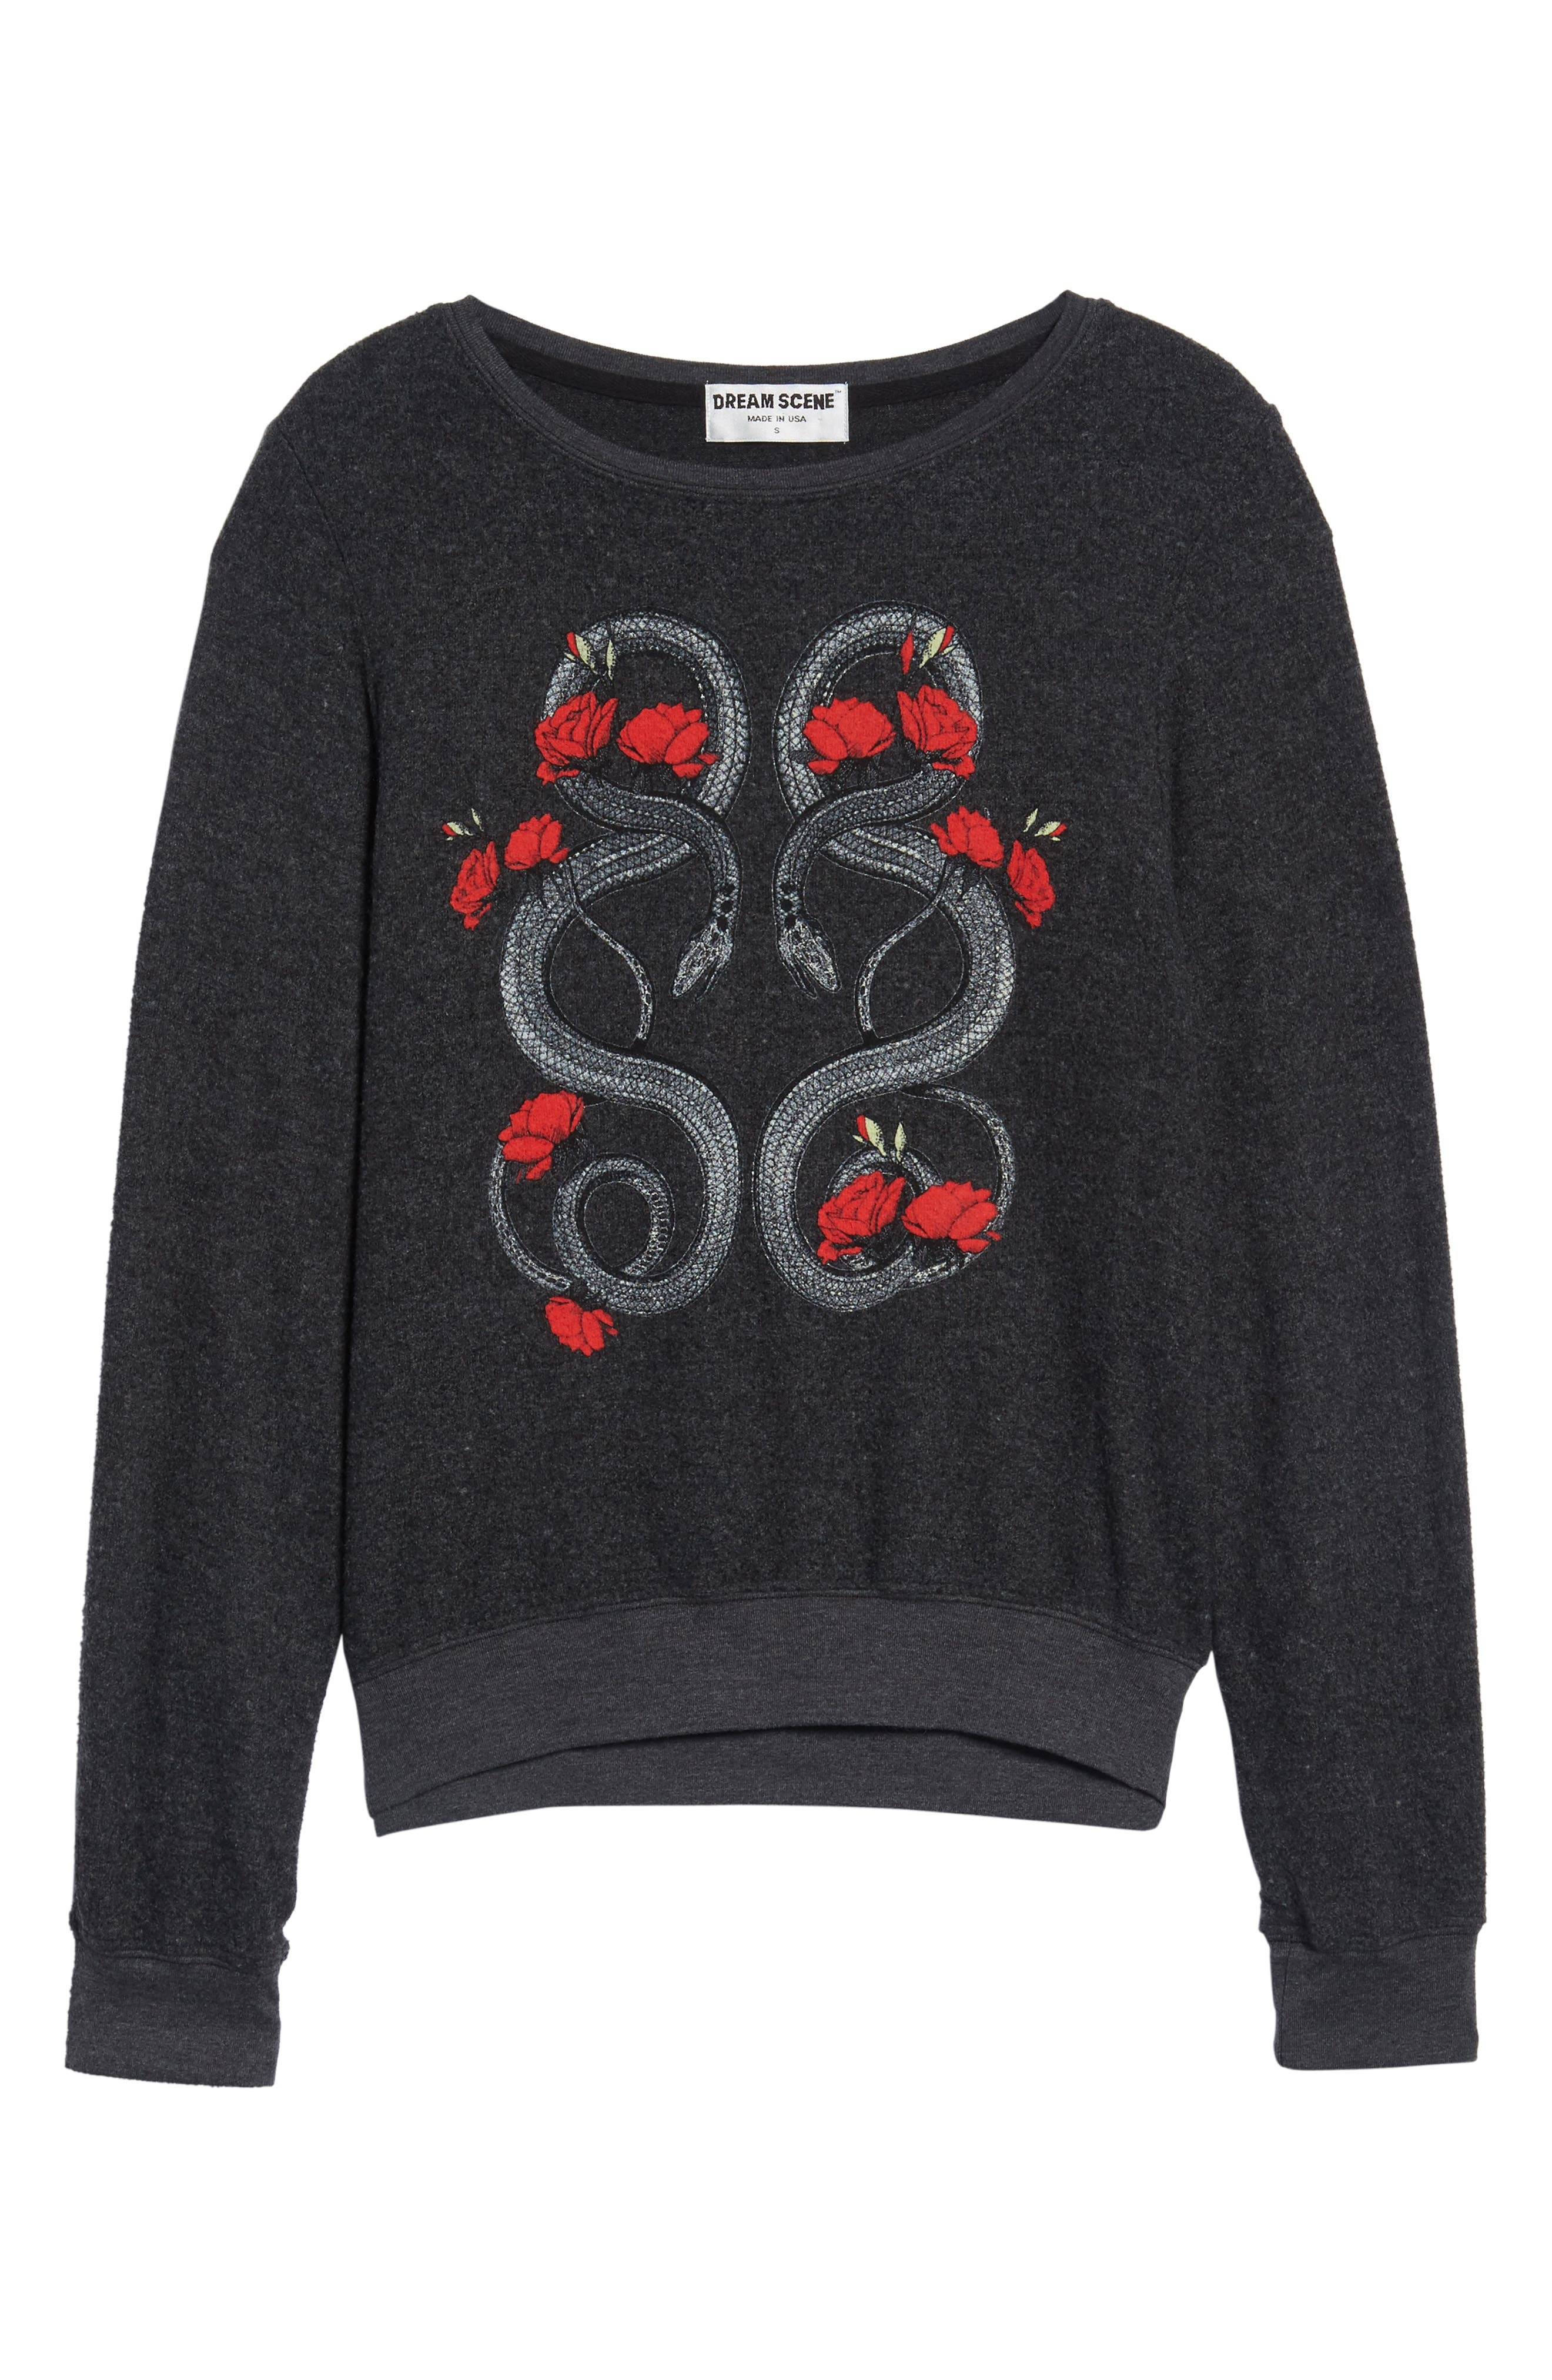 Red Snakes Sweatshirt,                             Alternate thumbnail 6, color,                             002